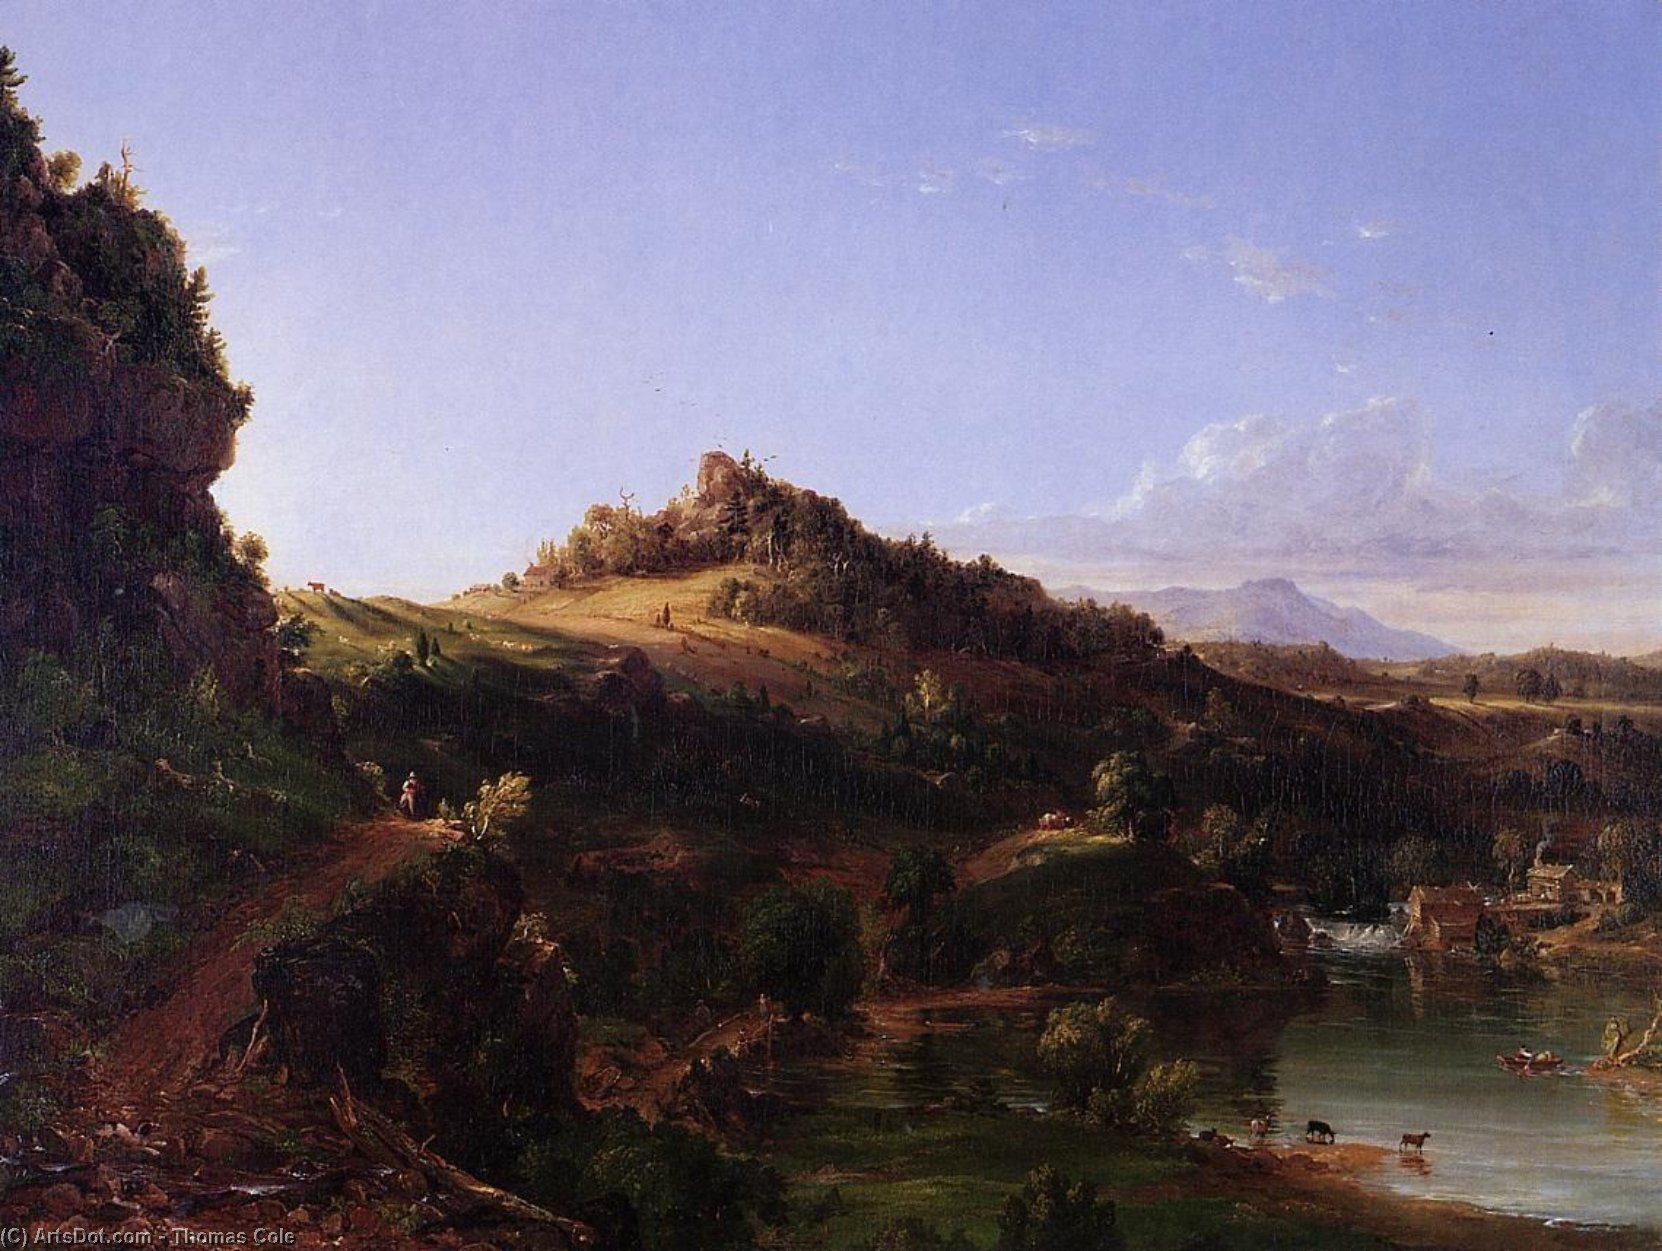 essay on american scenery cole Essay on american scenery thomas cole, essay on american scenery, the american magazine, ns 1 (jan 1836): 1-12 the essay, which is here offered.